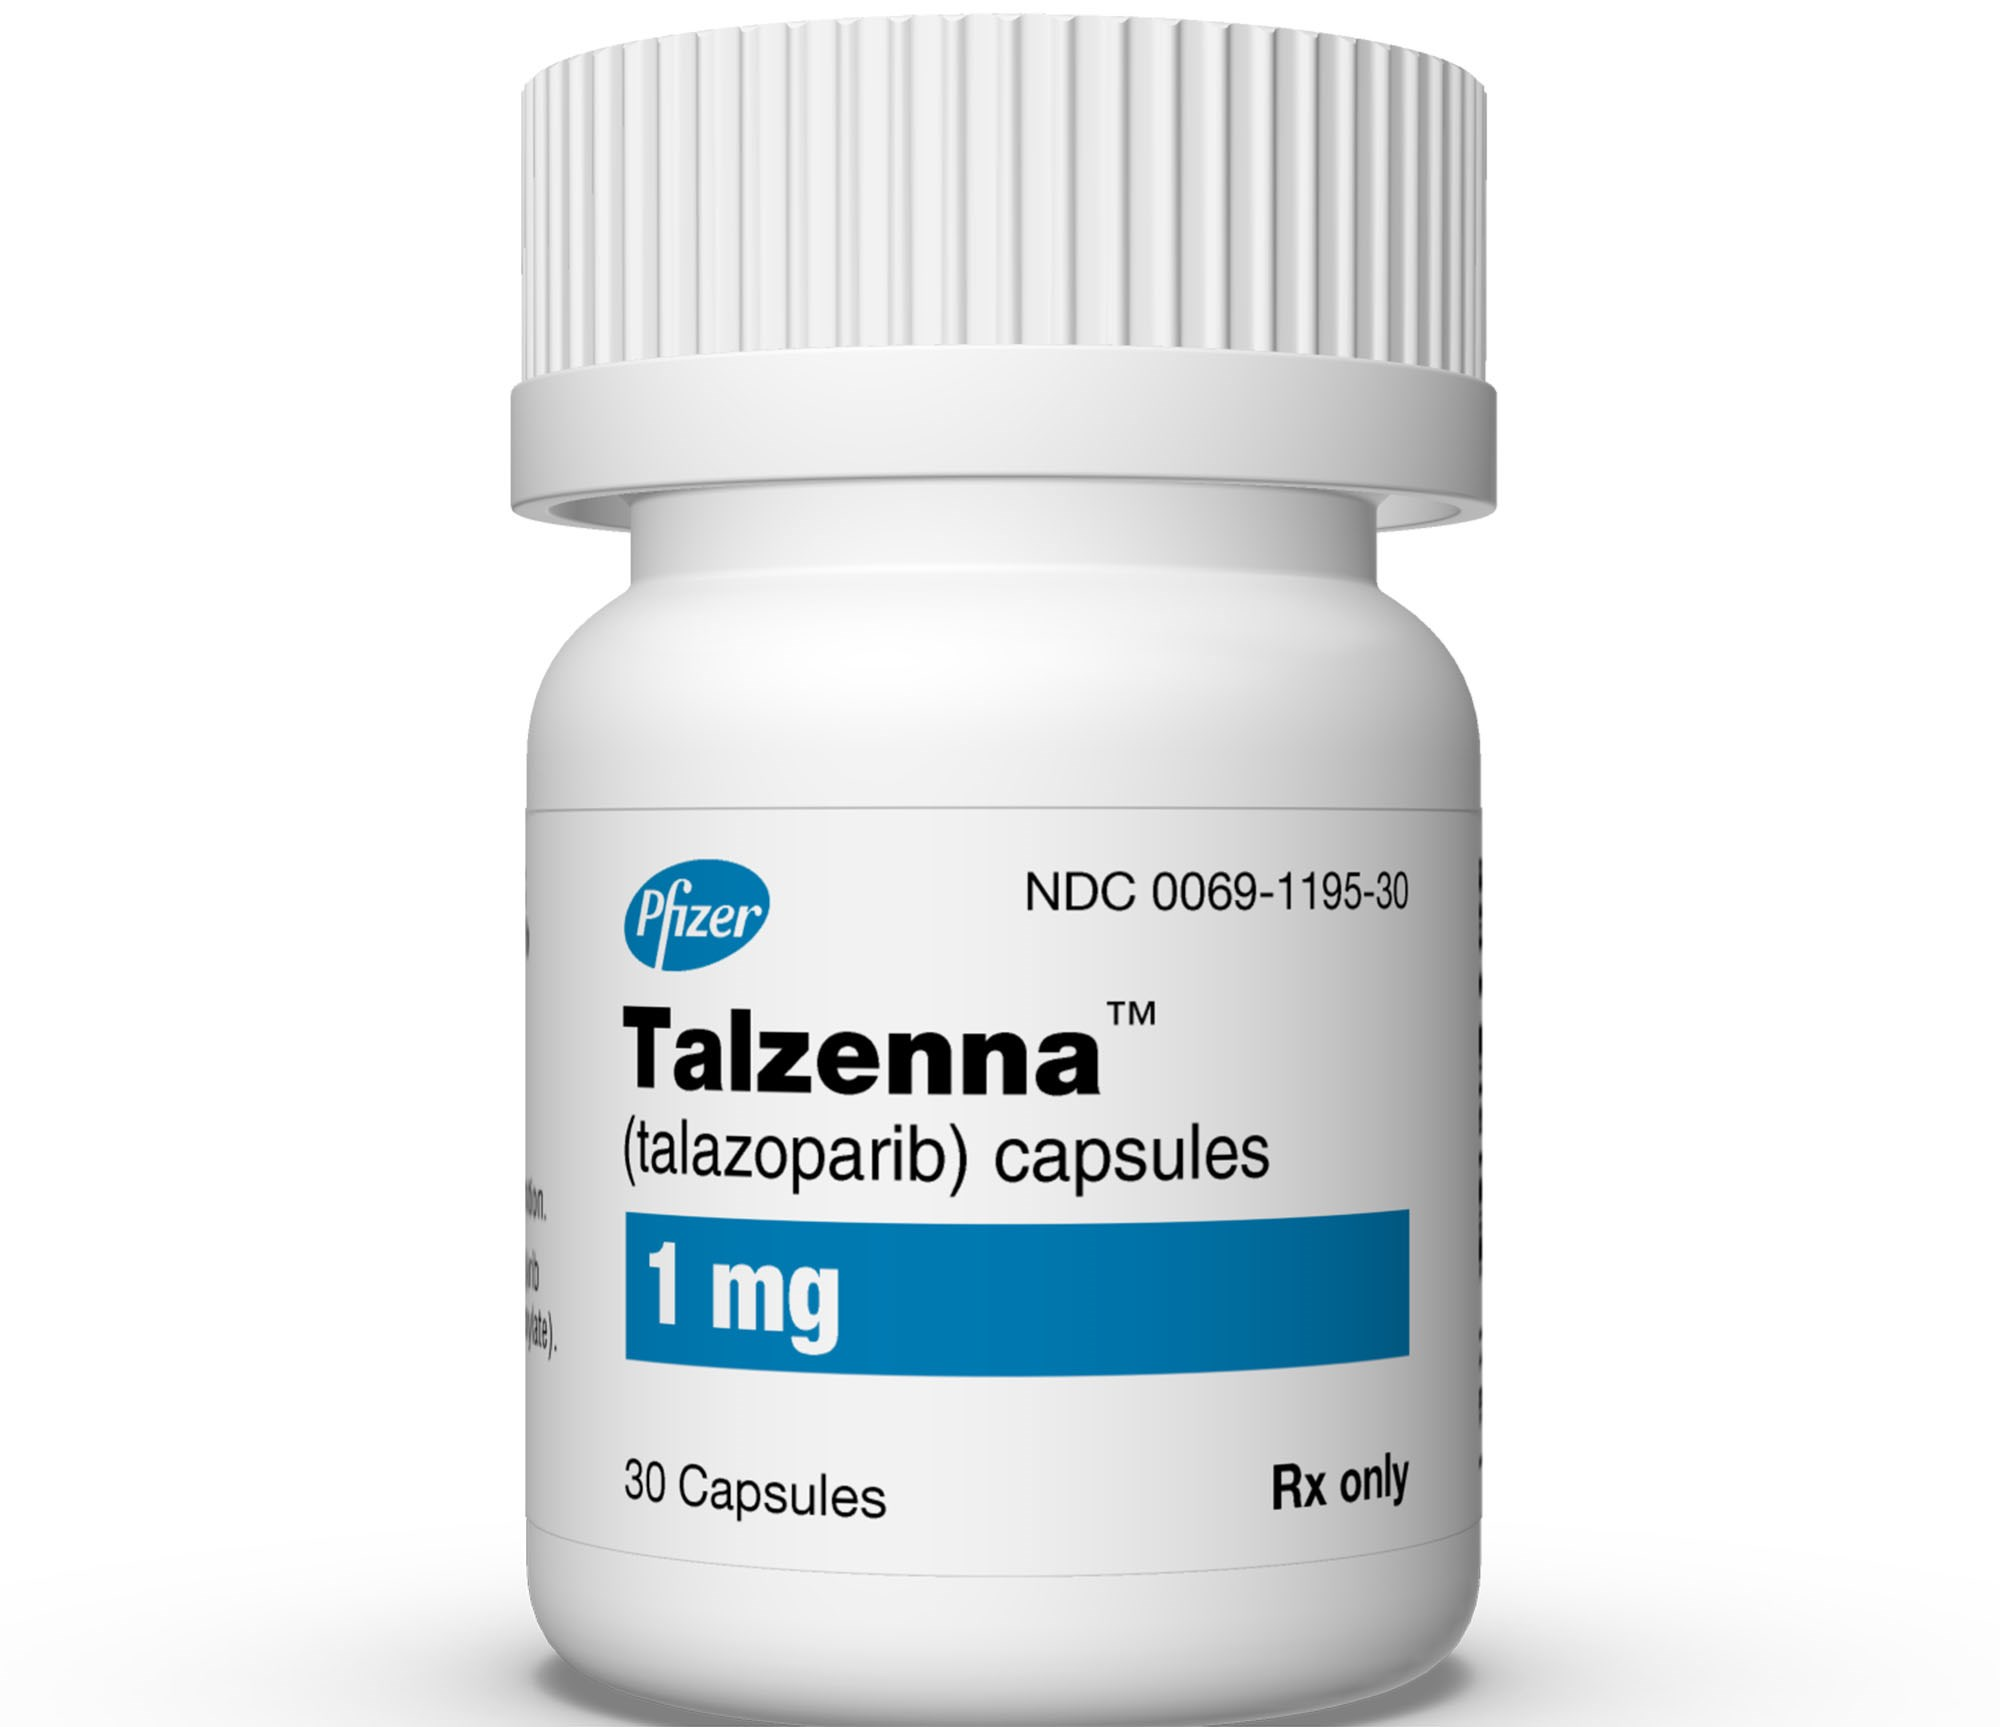 Talzenna Approved for Germline <i>BRCA</i>-Mutated, <i>HER2</i>-Negative Breast Cancer